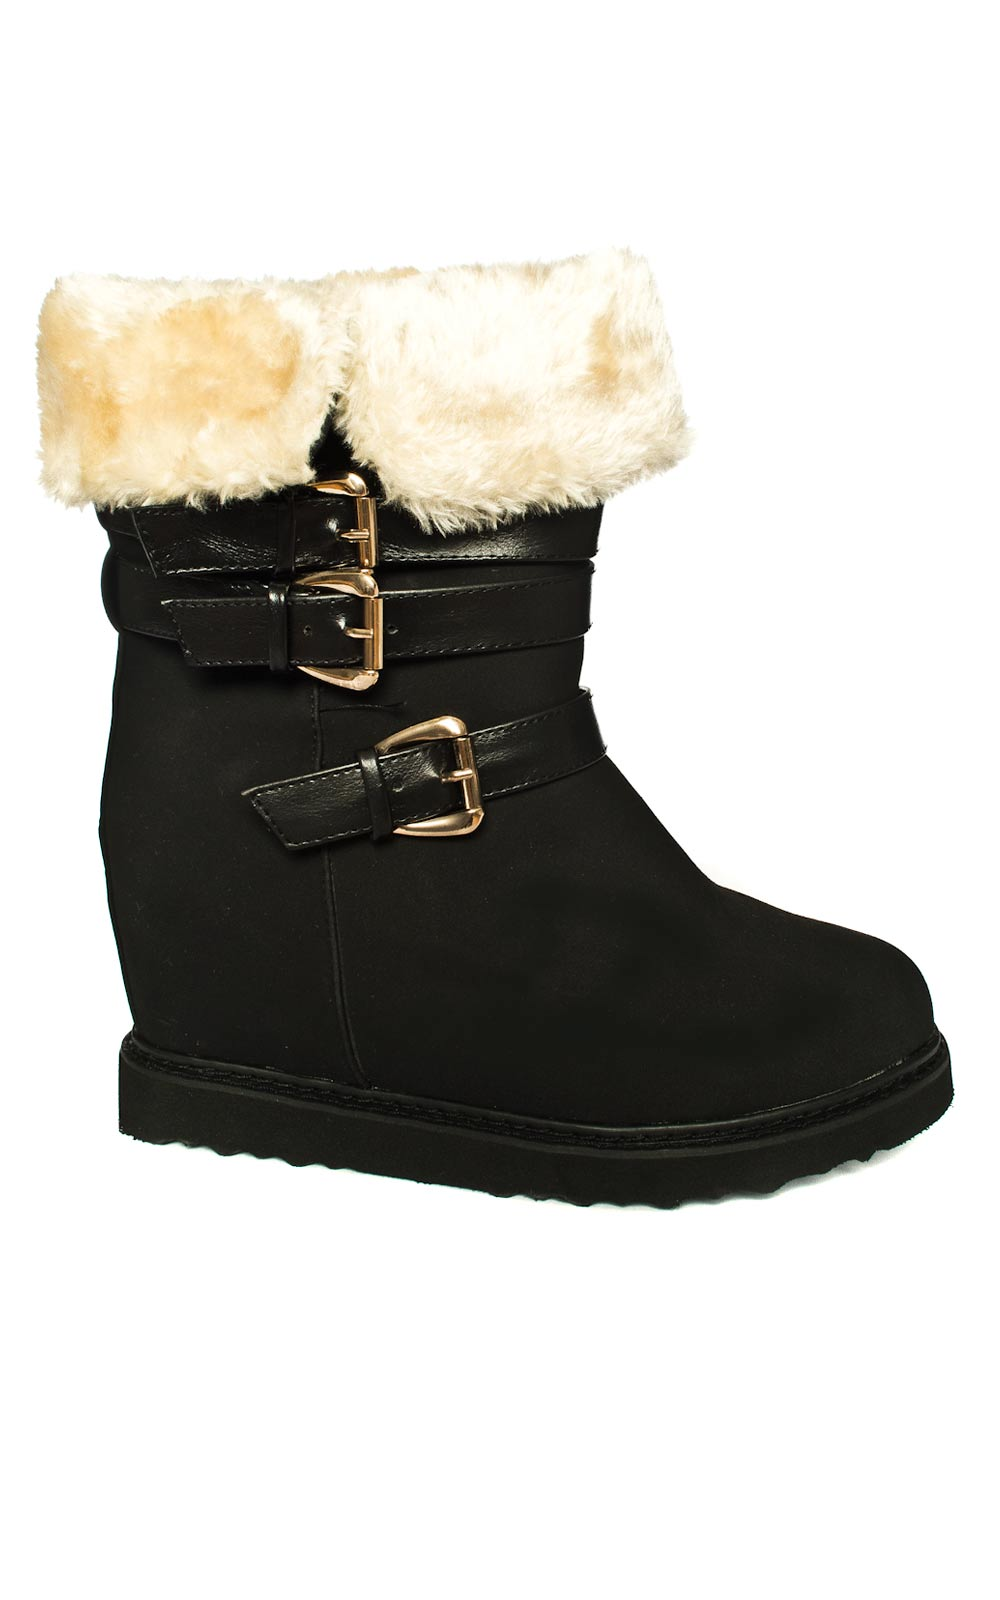 iKrush Phoebe Fur Lined Boots